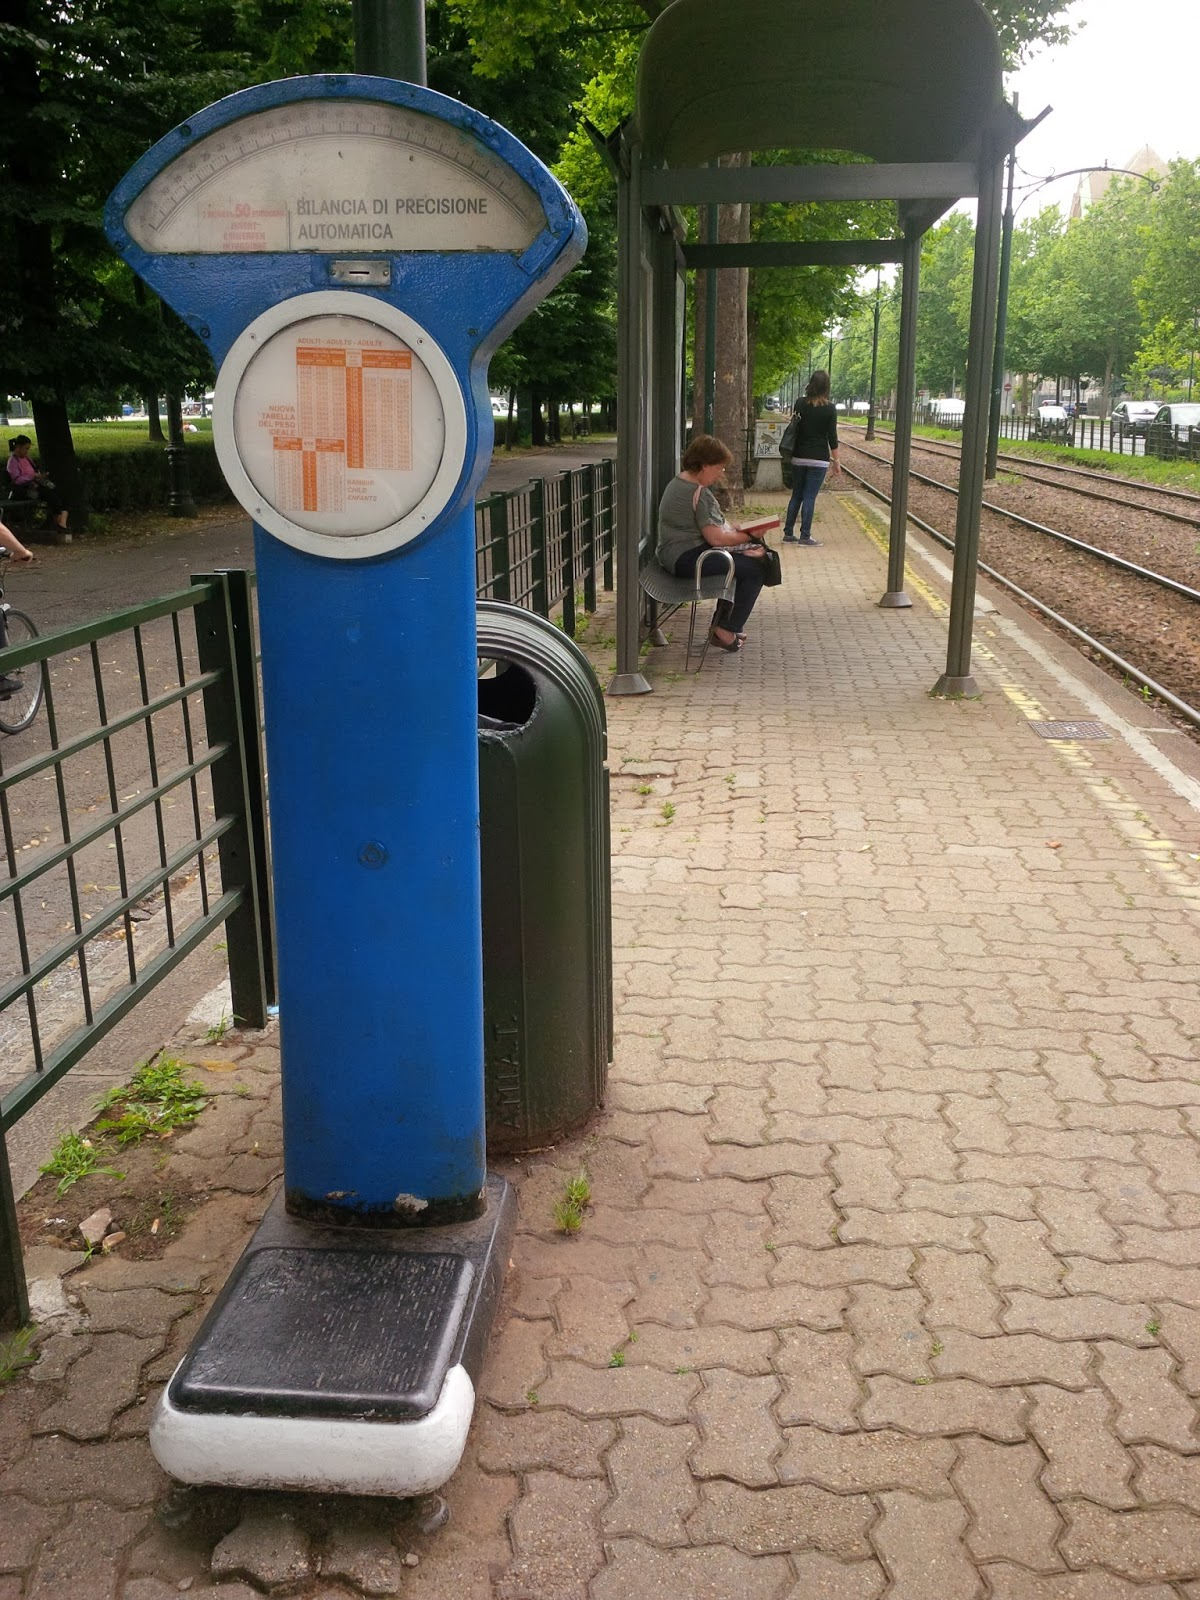 Scales on a public transport stop, Turin, Italy